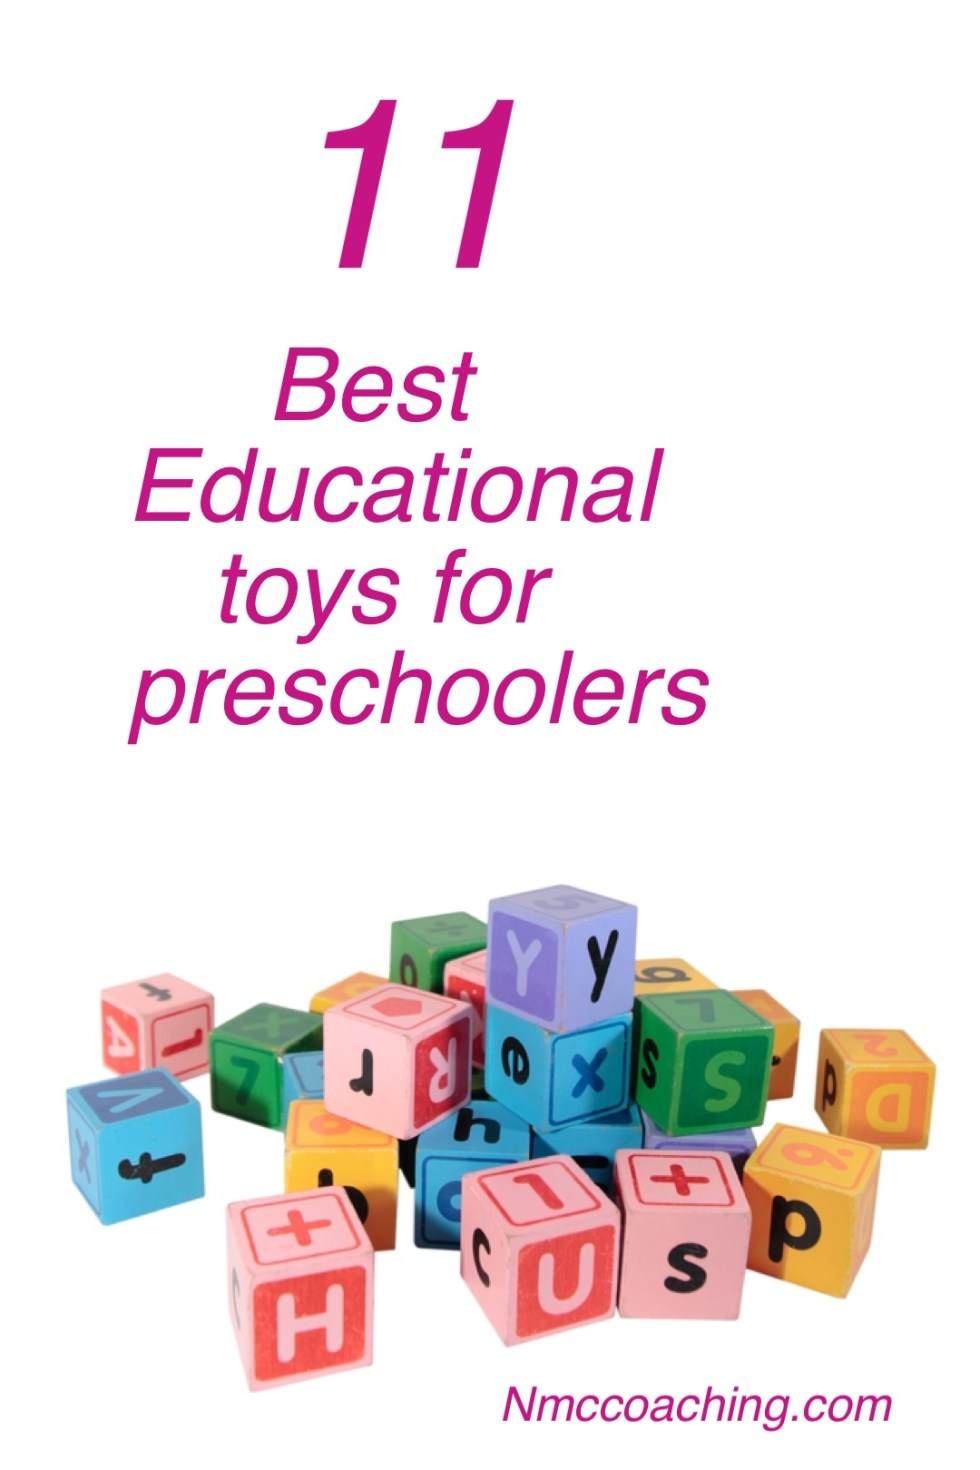 11 Best Educational Toys for preschoolers